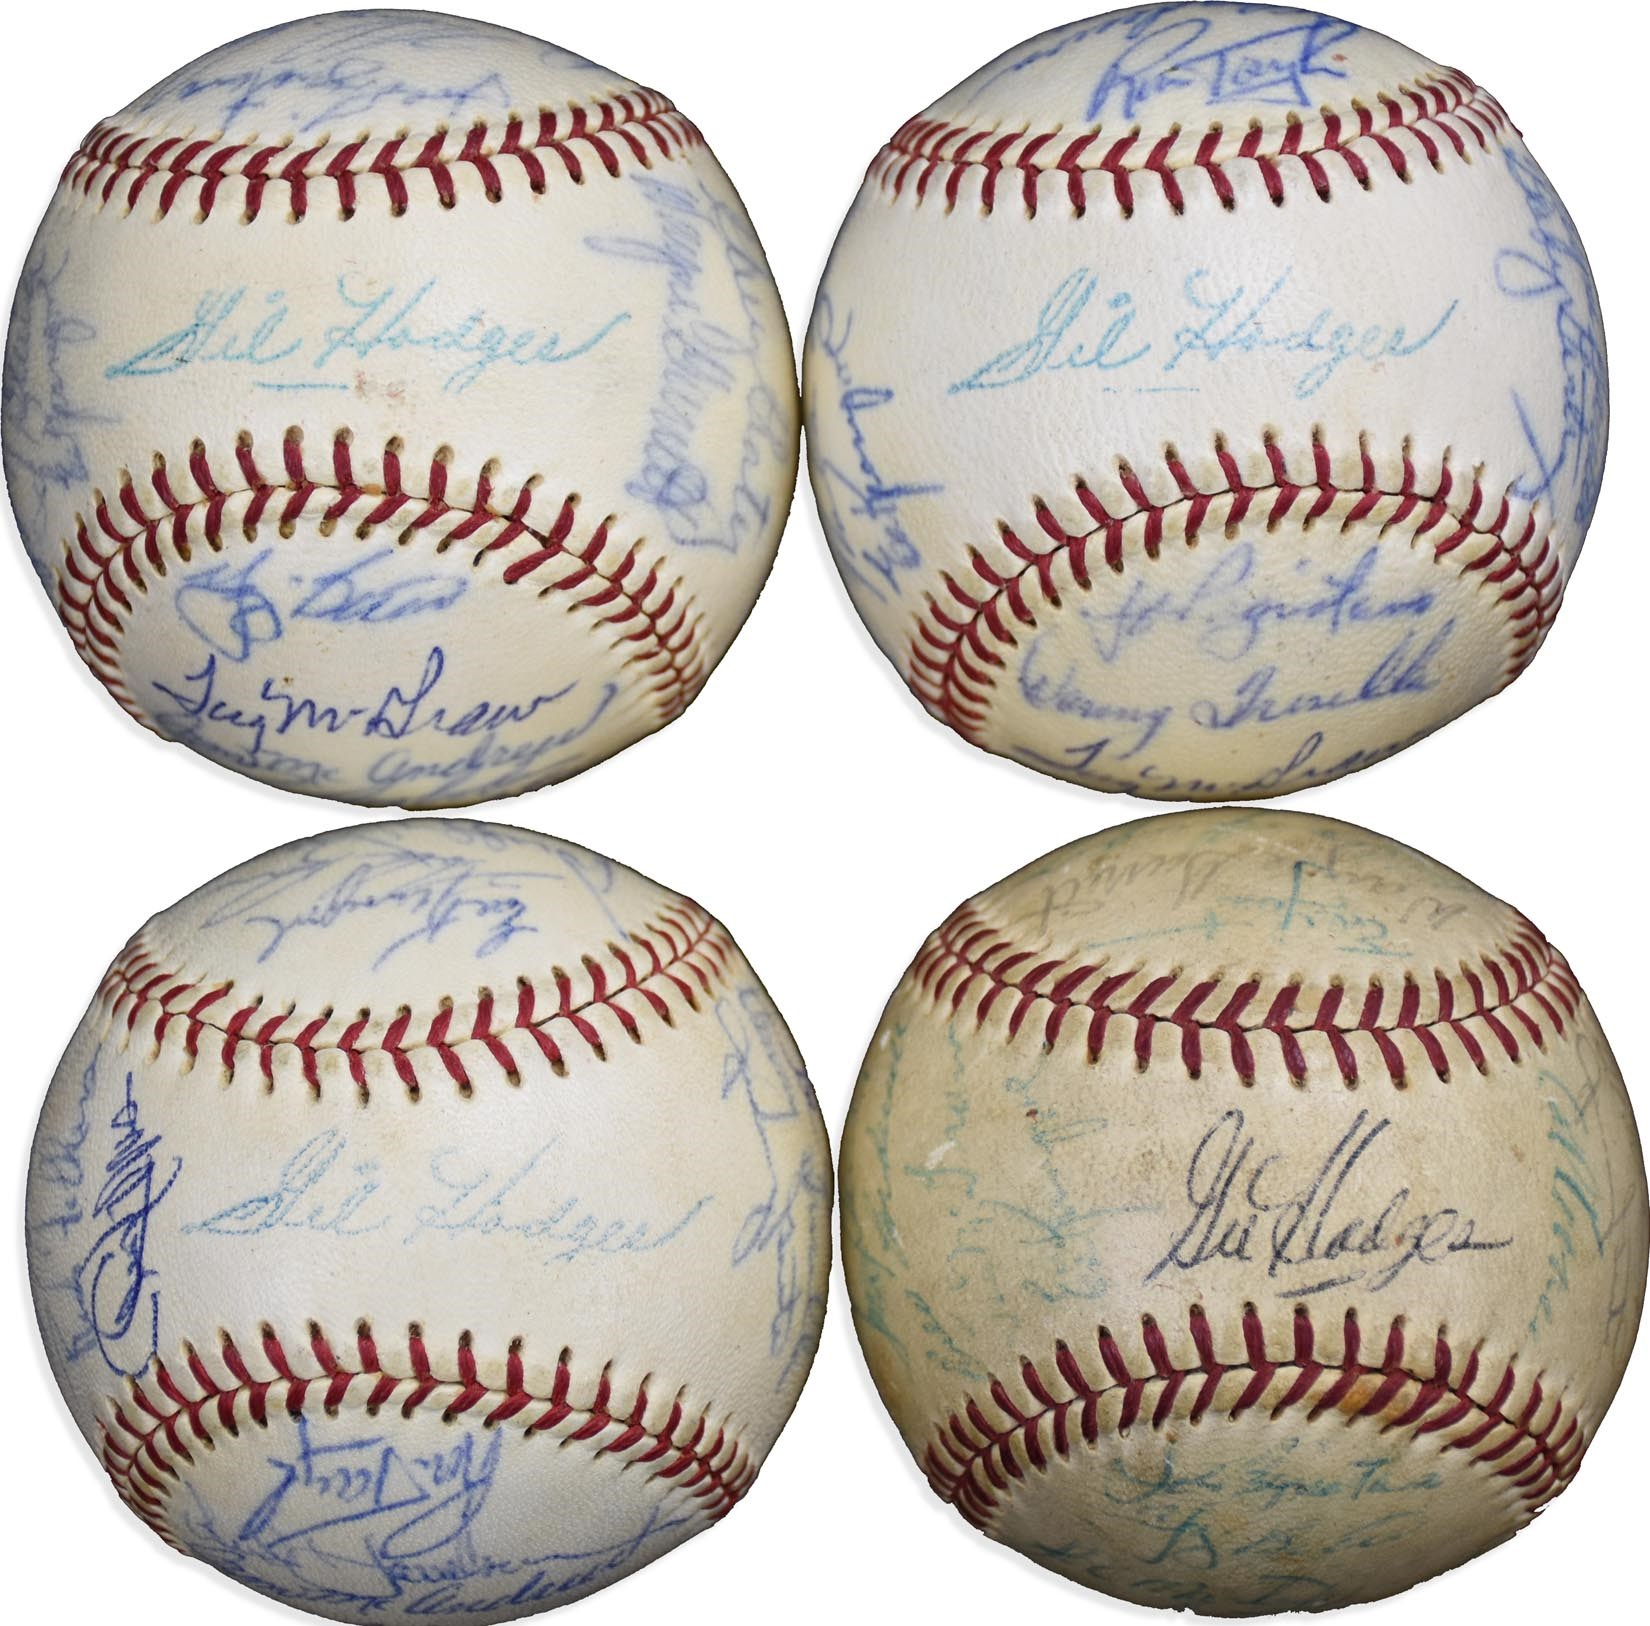 1969 World Champion & 1970 NY Mets Team-Signed Baseballs - Gifted by Ron Taylor (4)